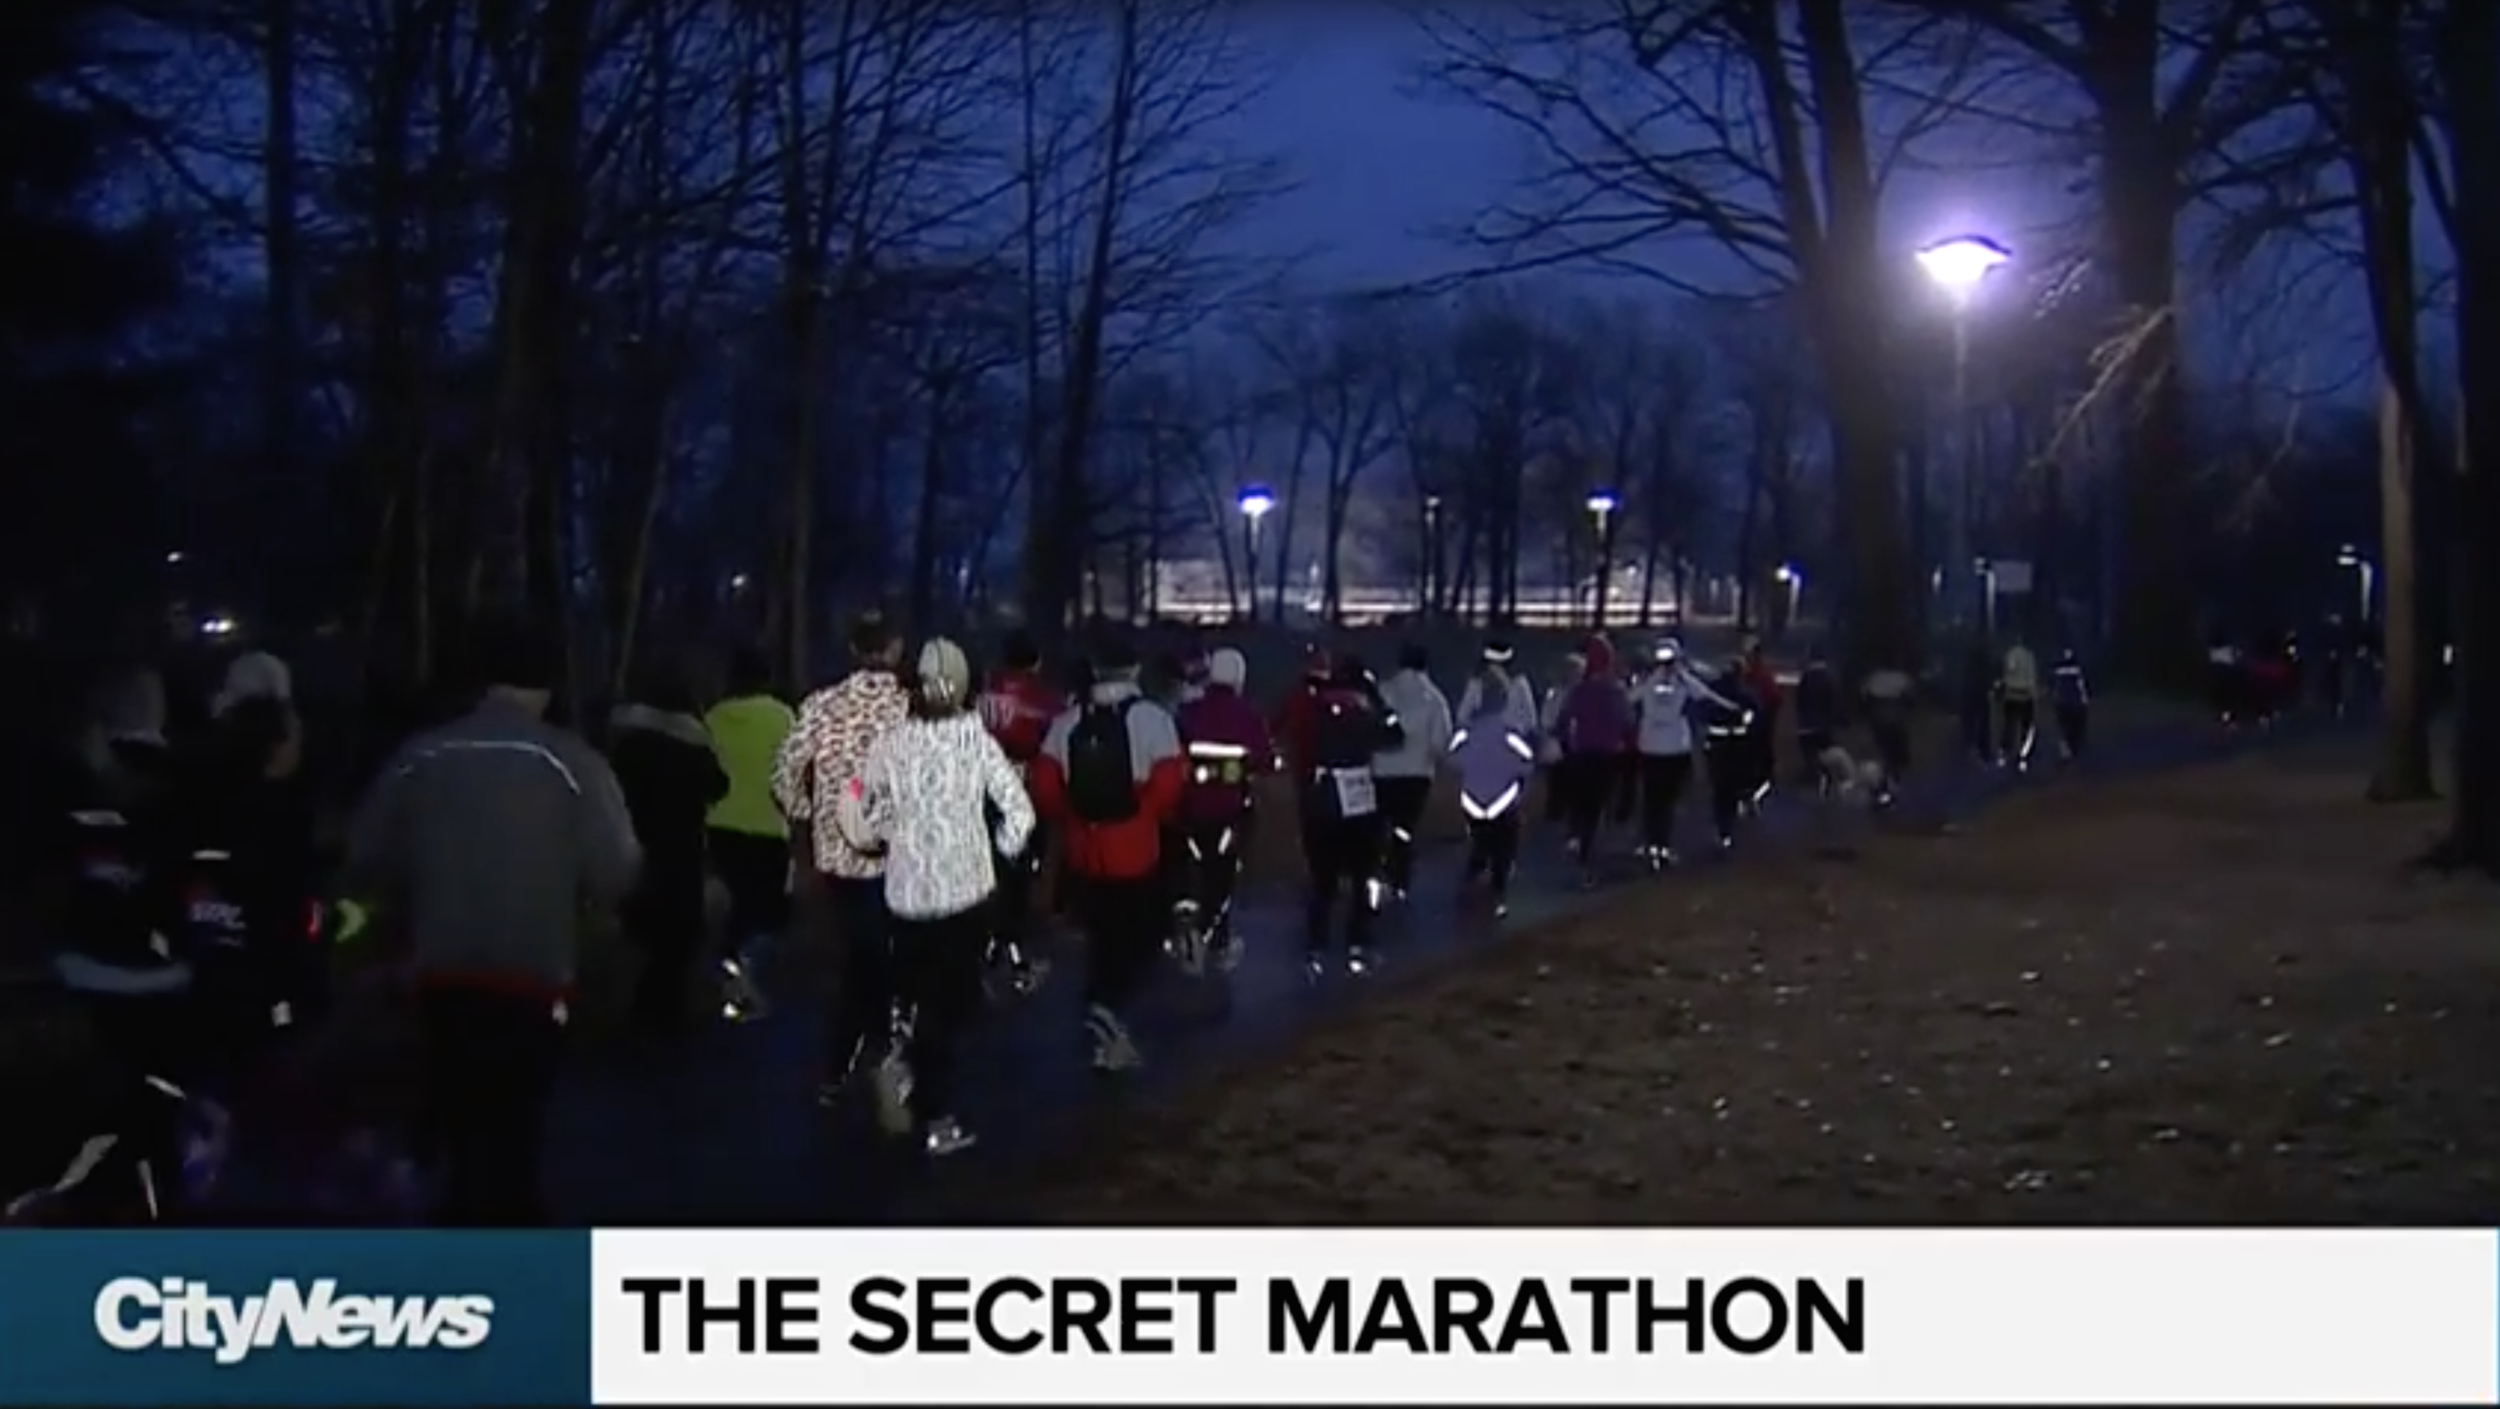 CITY TV News: The Secret Marathon 3K - Toronto